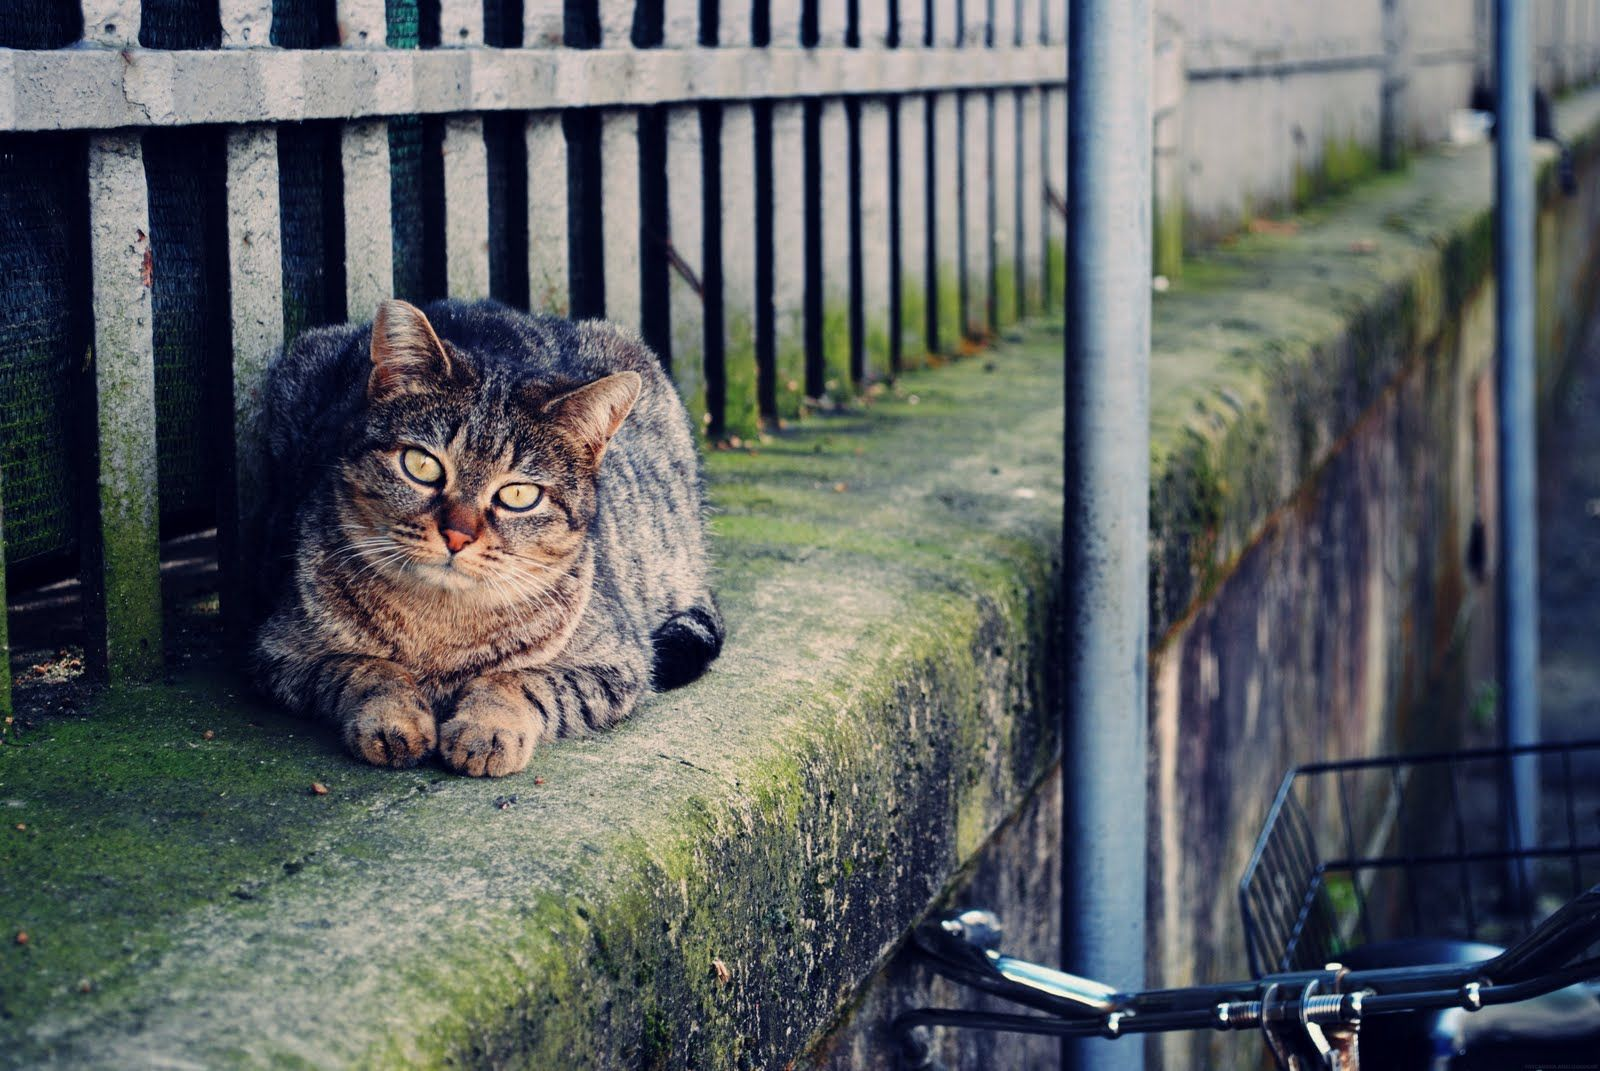 Kitty Cat Firenze Italy Travel Seasage Seasageblog Cats Cool Cats Kitty